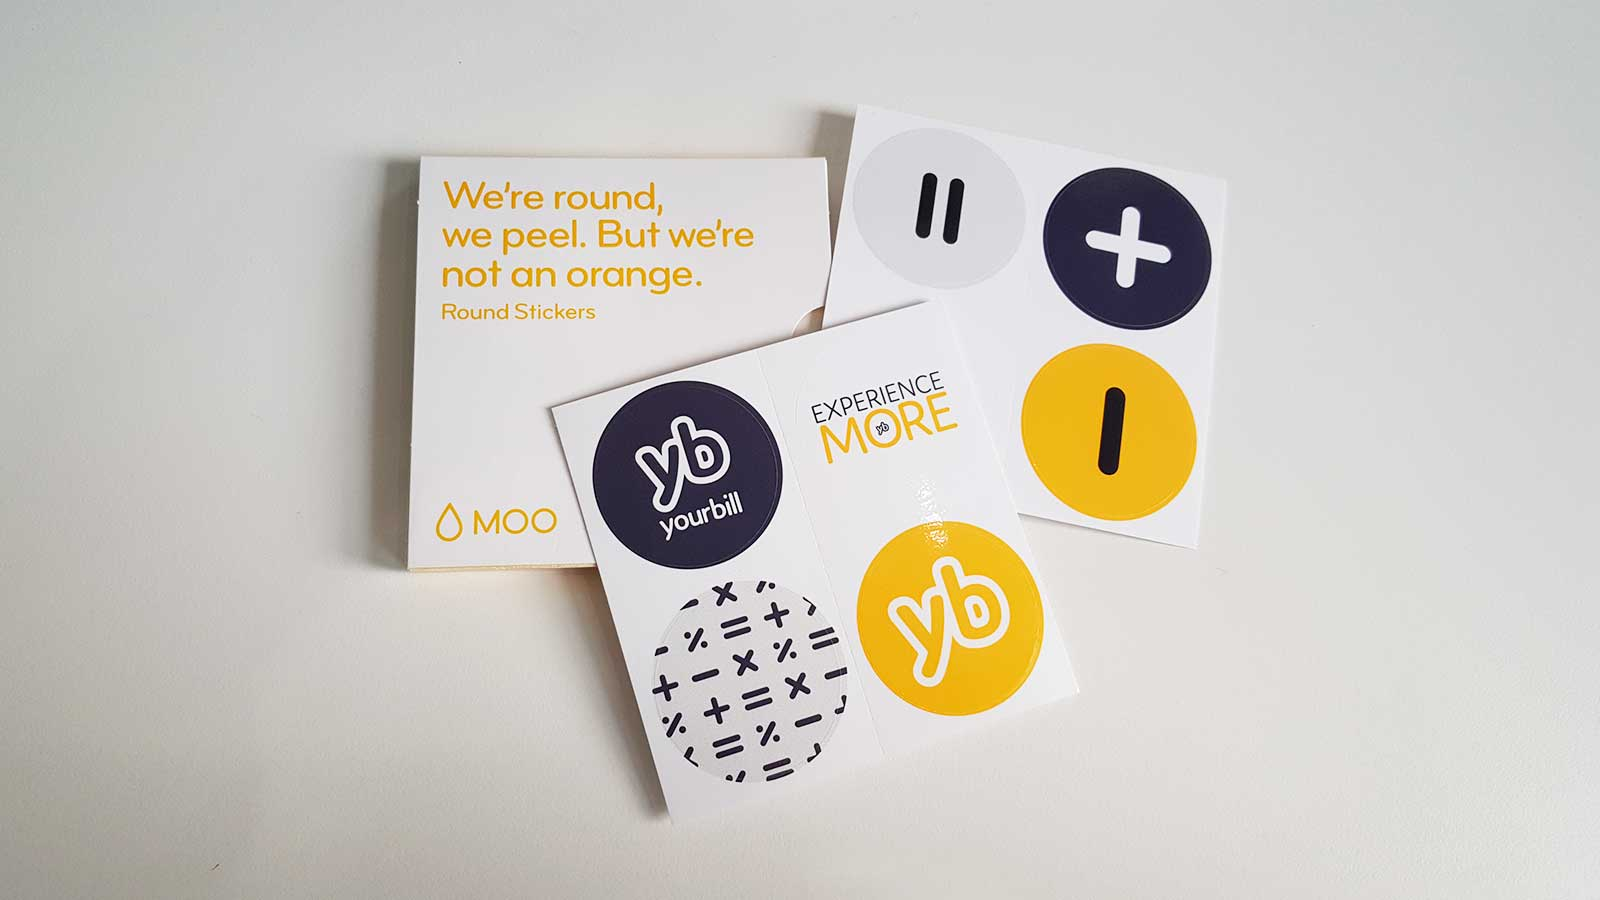 Yourbill branded postcards and stickers